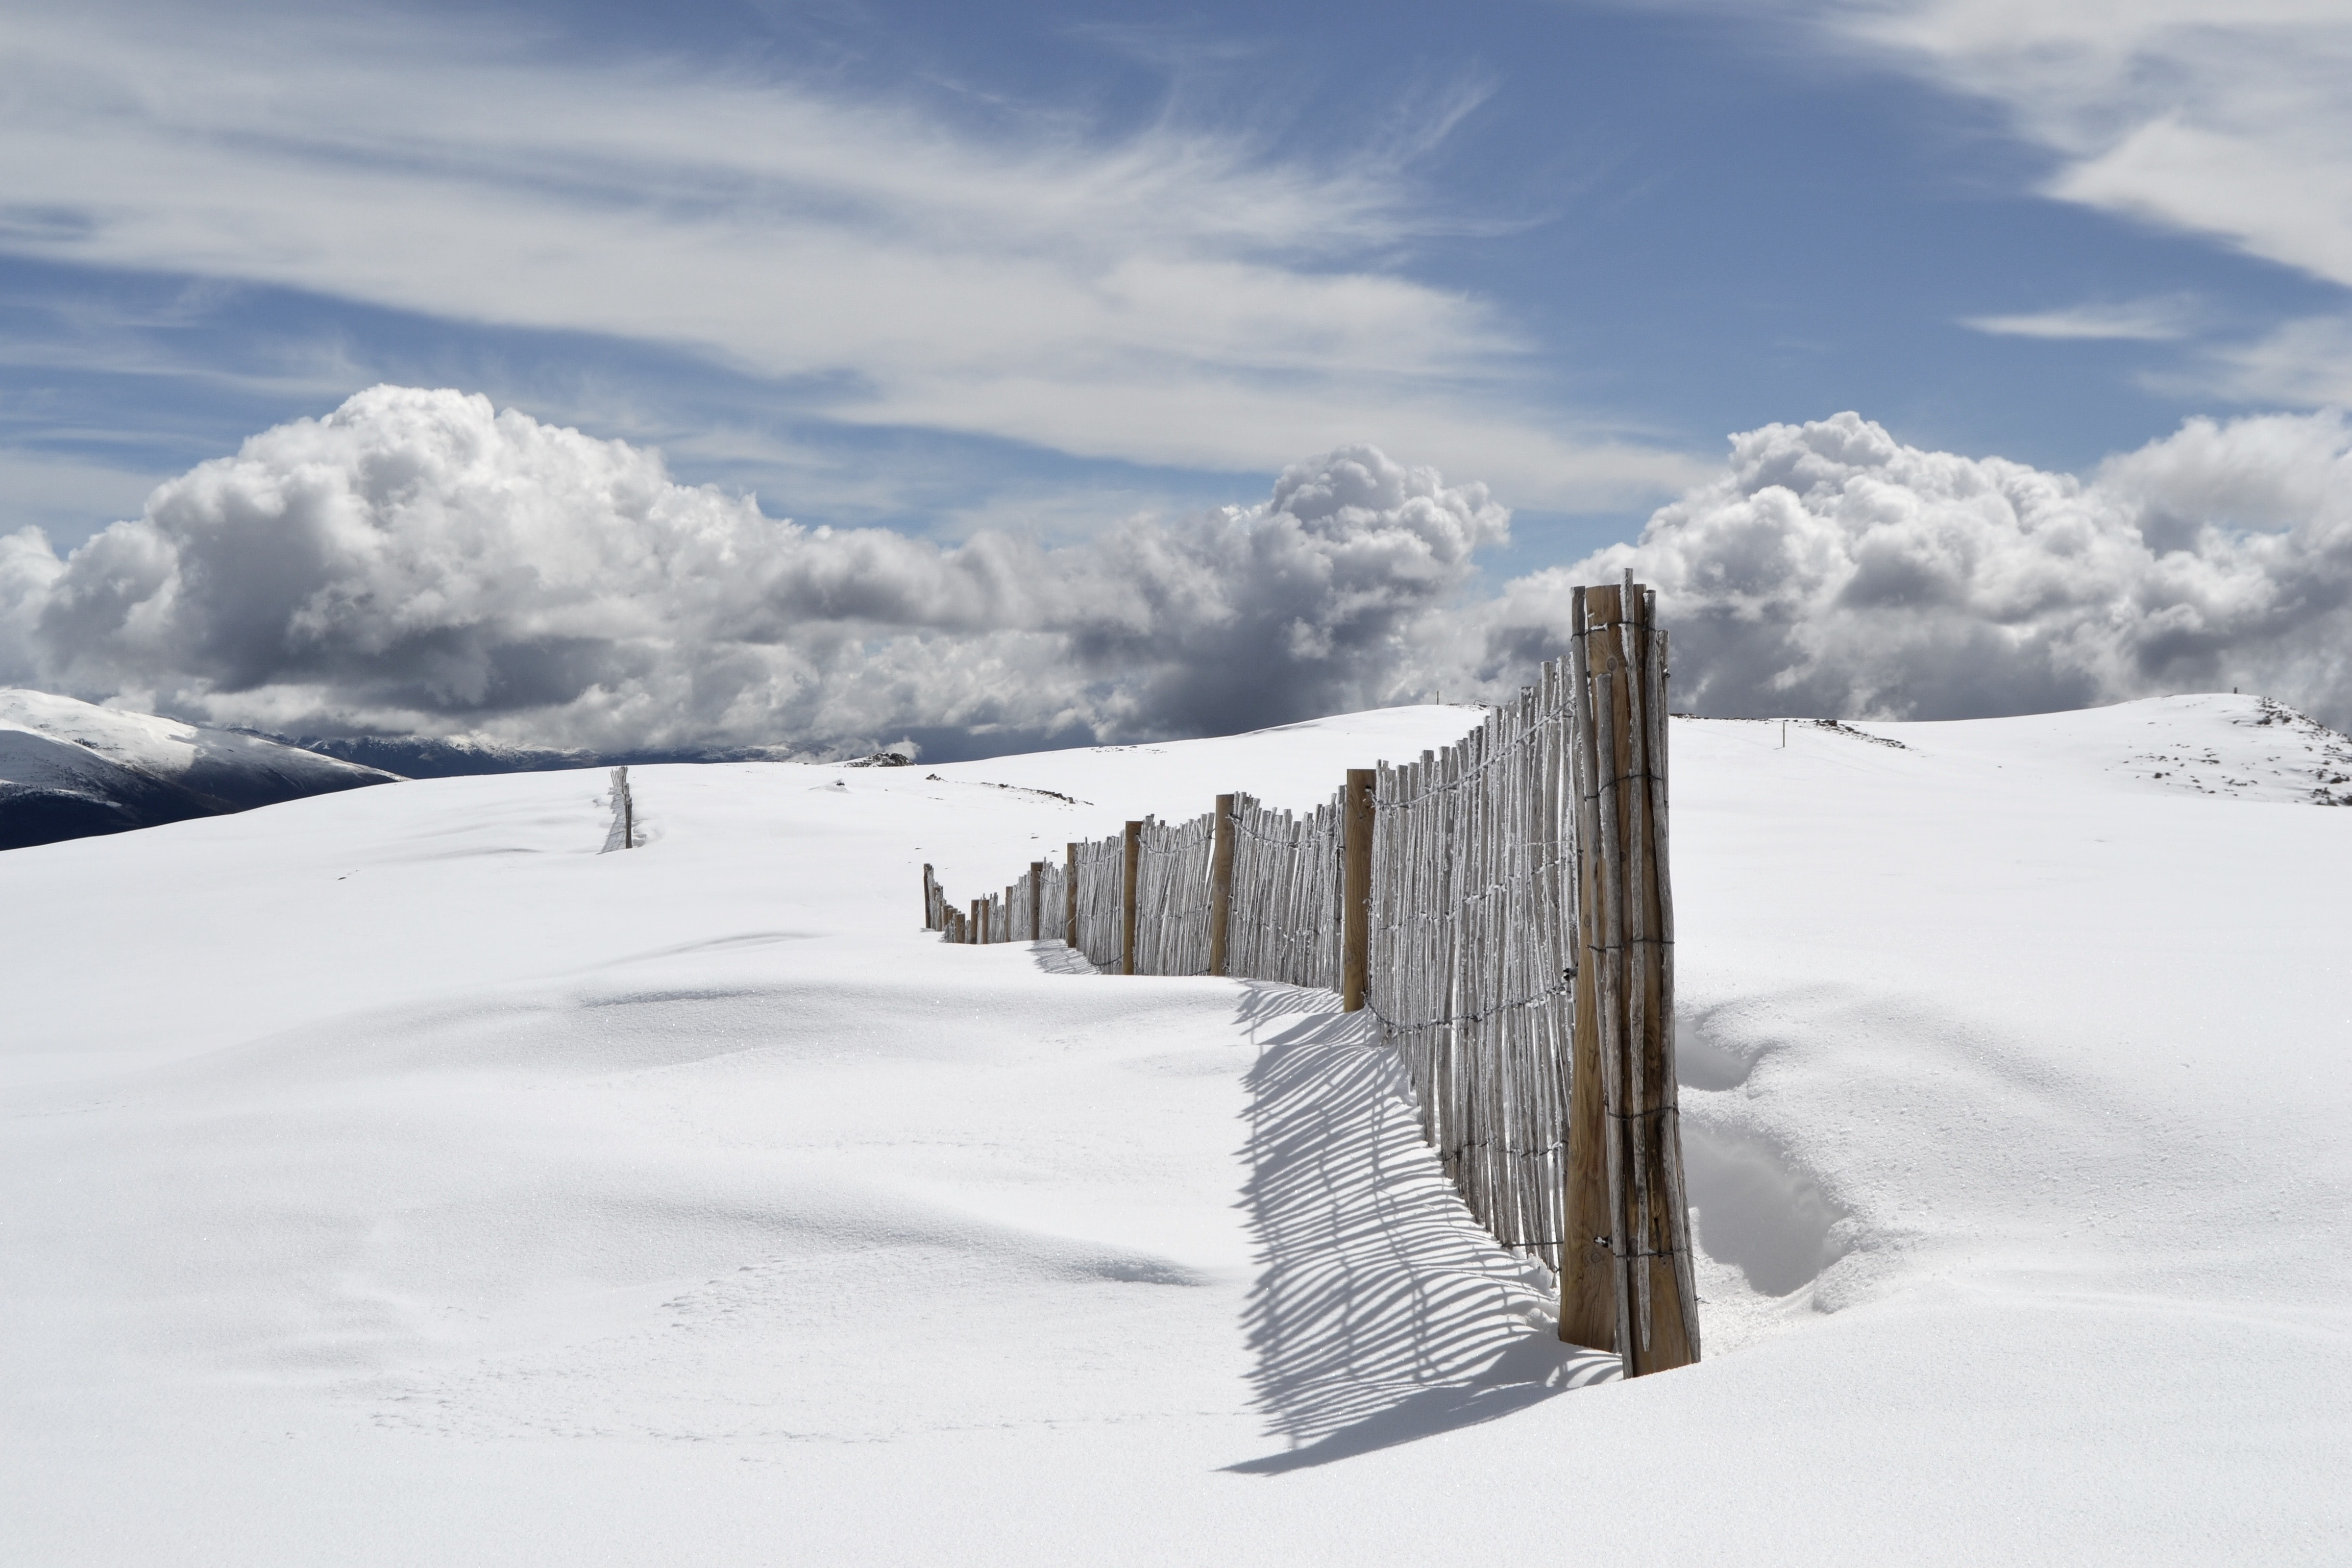 The end of a wooden fence traveling along a snow covered mountain